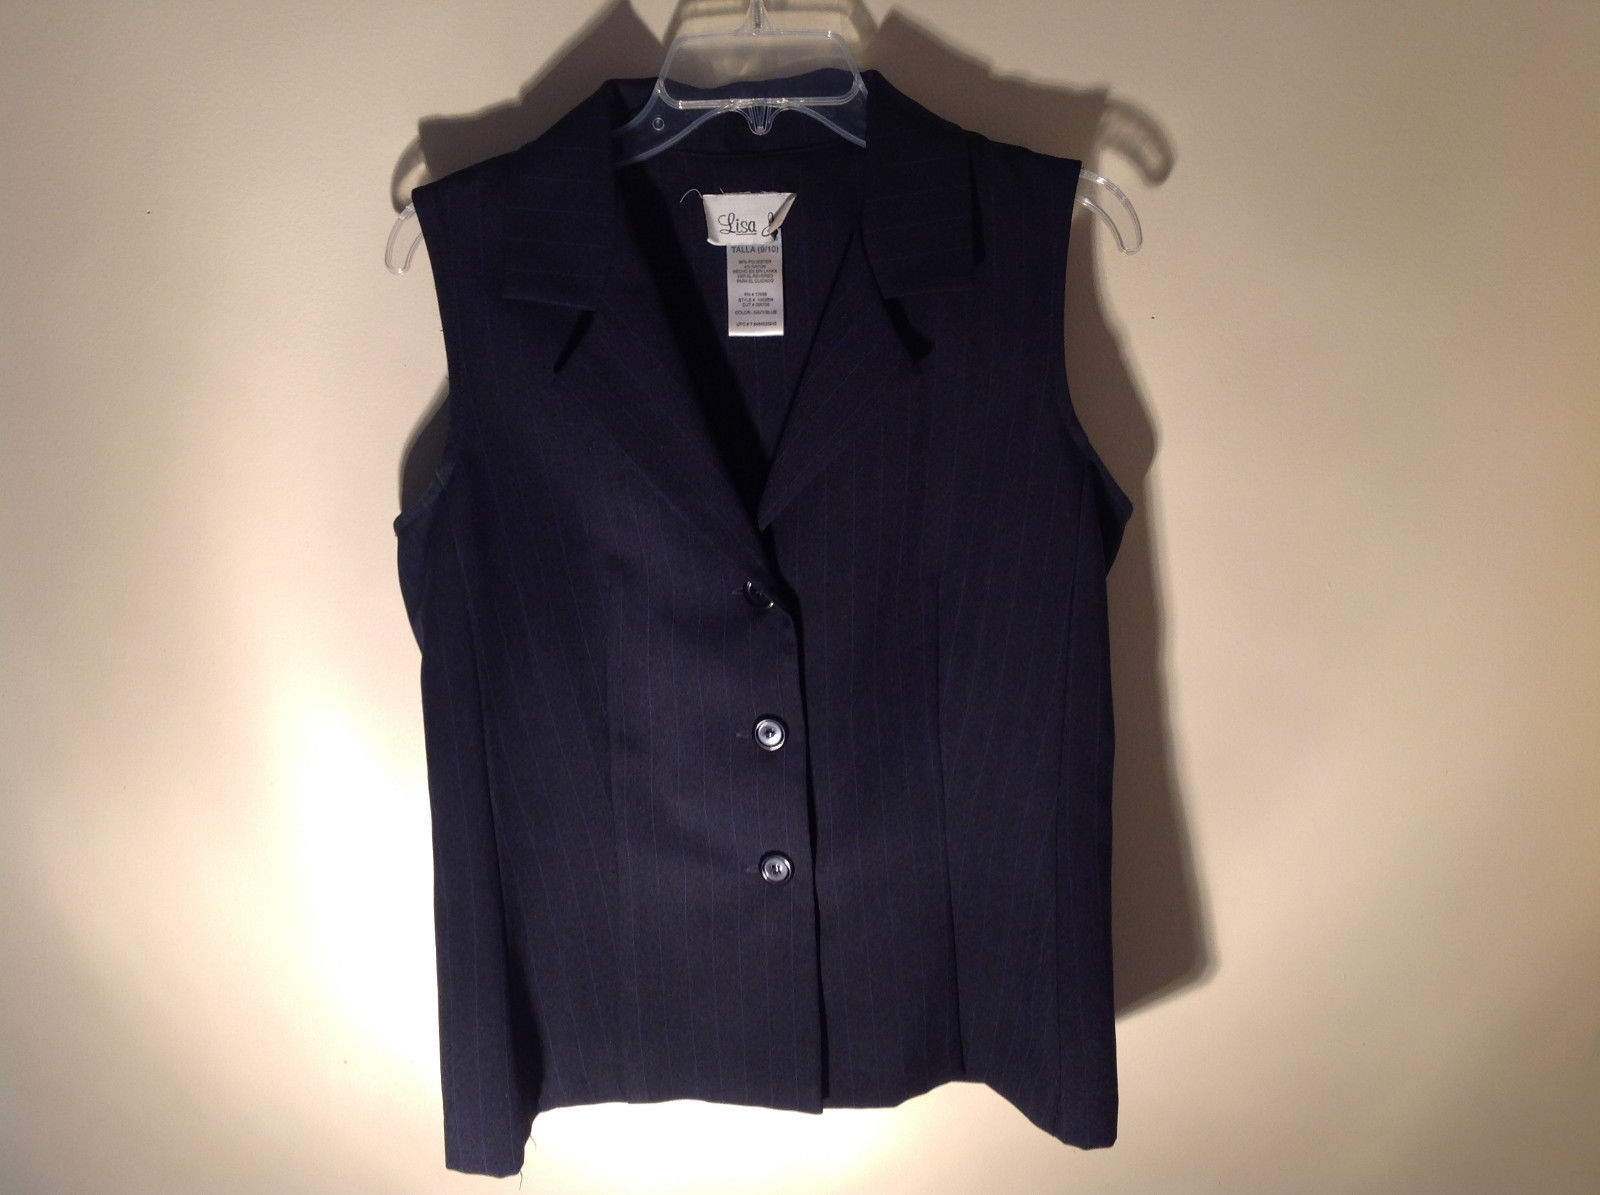 Lisa Jo Navy Blue Black Sleeveless Vest 3 Buttons Collar Formal Size 9 to 10